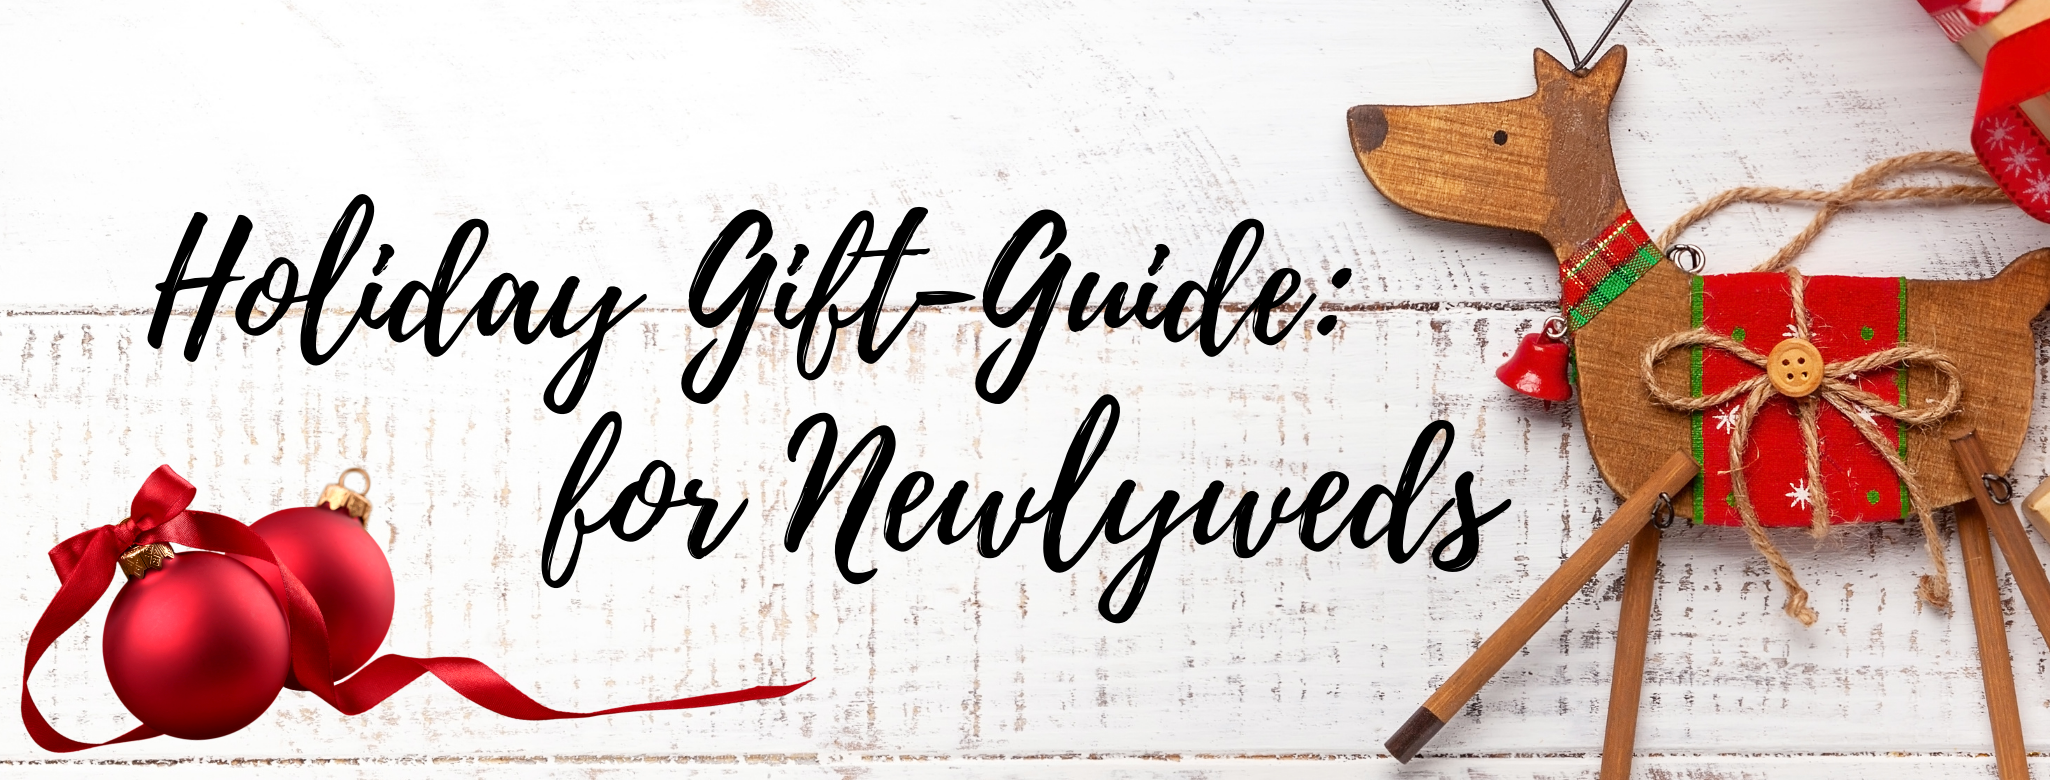 HOLIDAY GIFT-GUIDE: FOR NEWLYWEDS